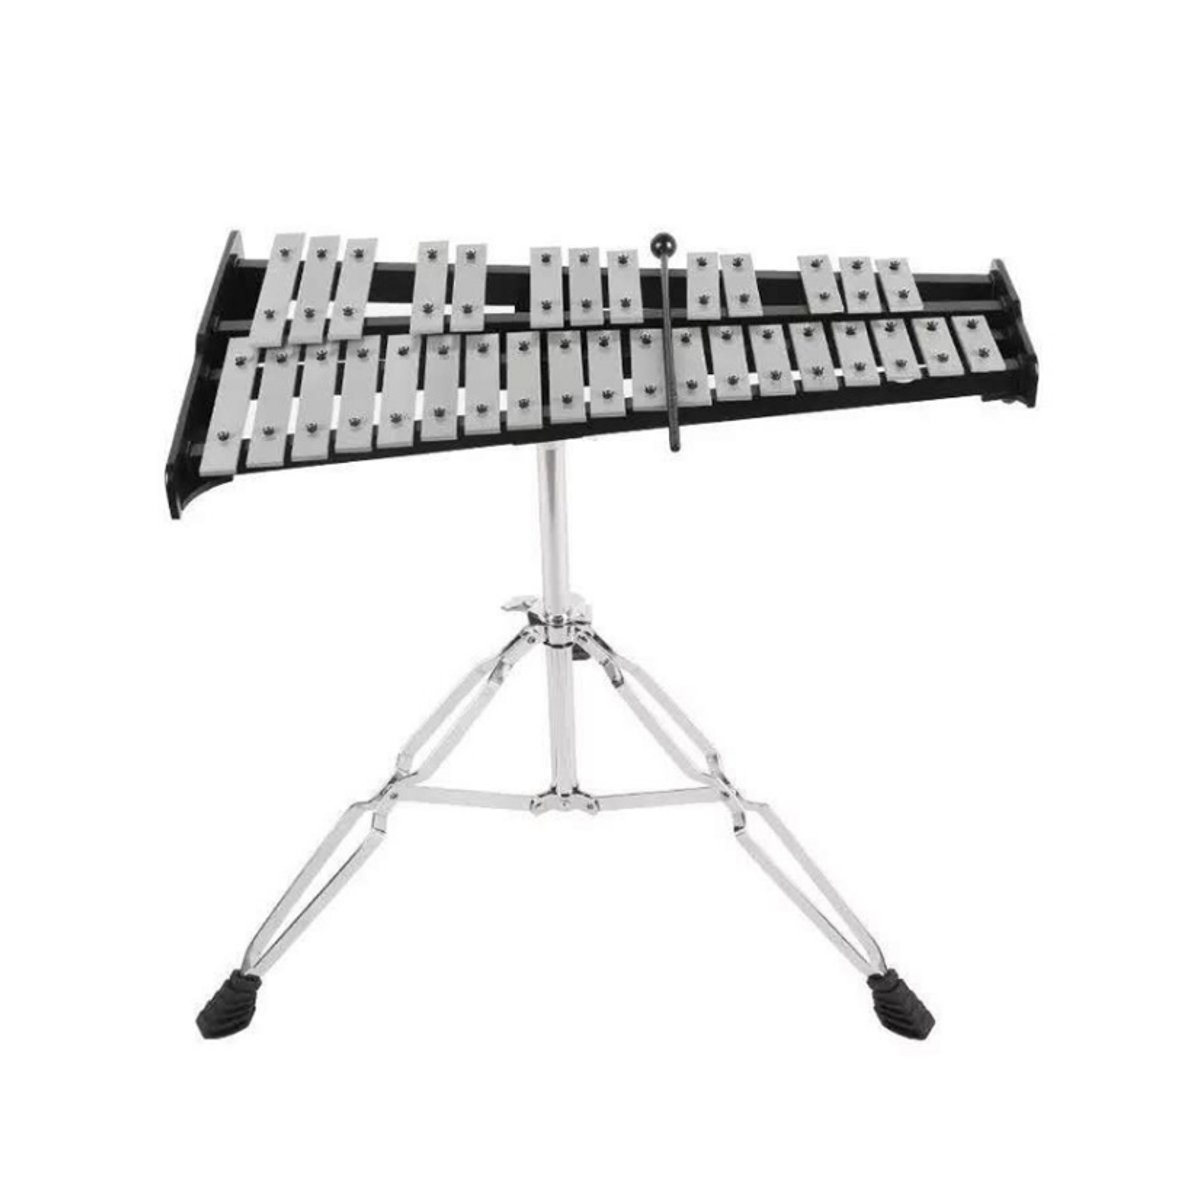 32 Note Xylophone Aluminum Piano Orff Instrument with Bag